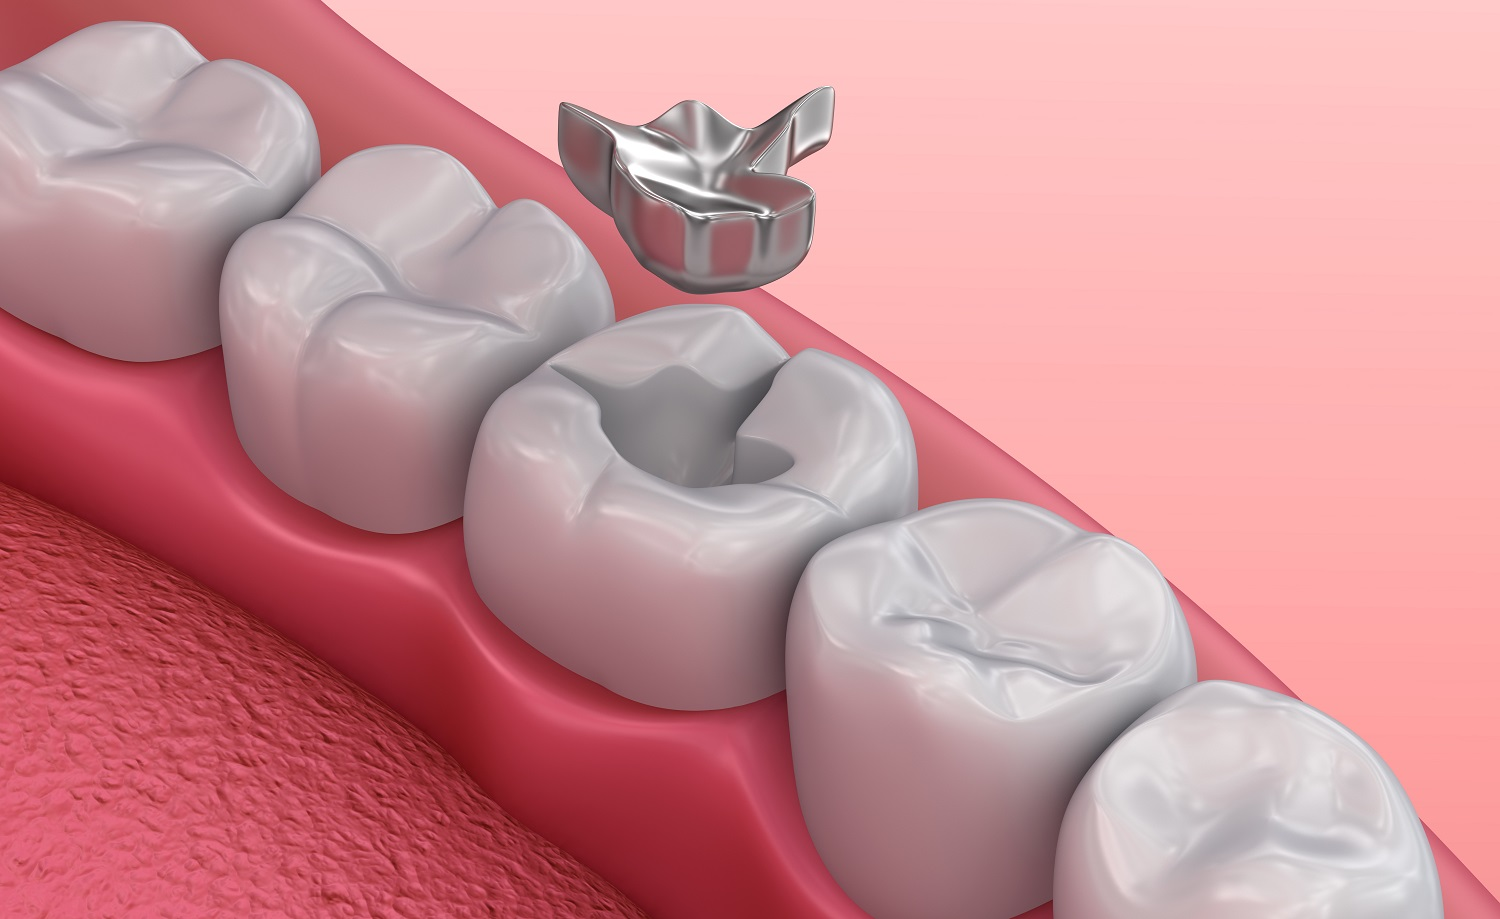 What To Look For When Changing Your Silver Fillings In Culver City